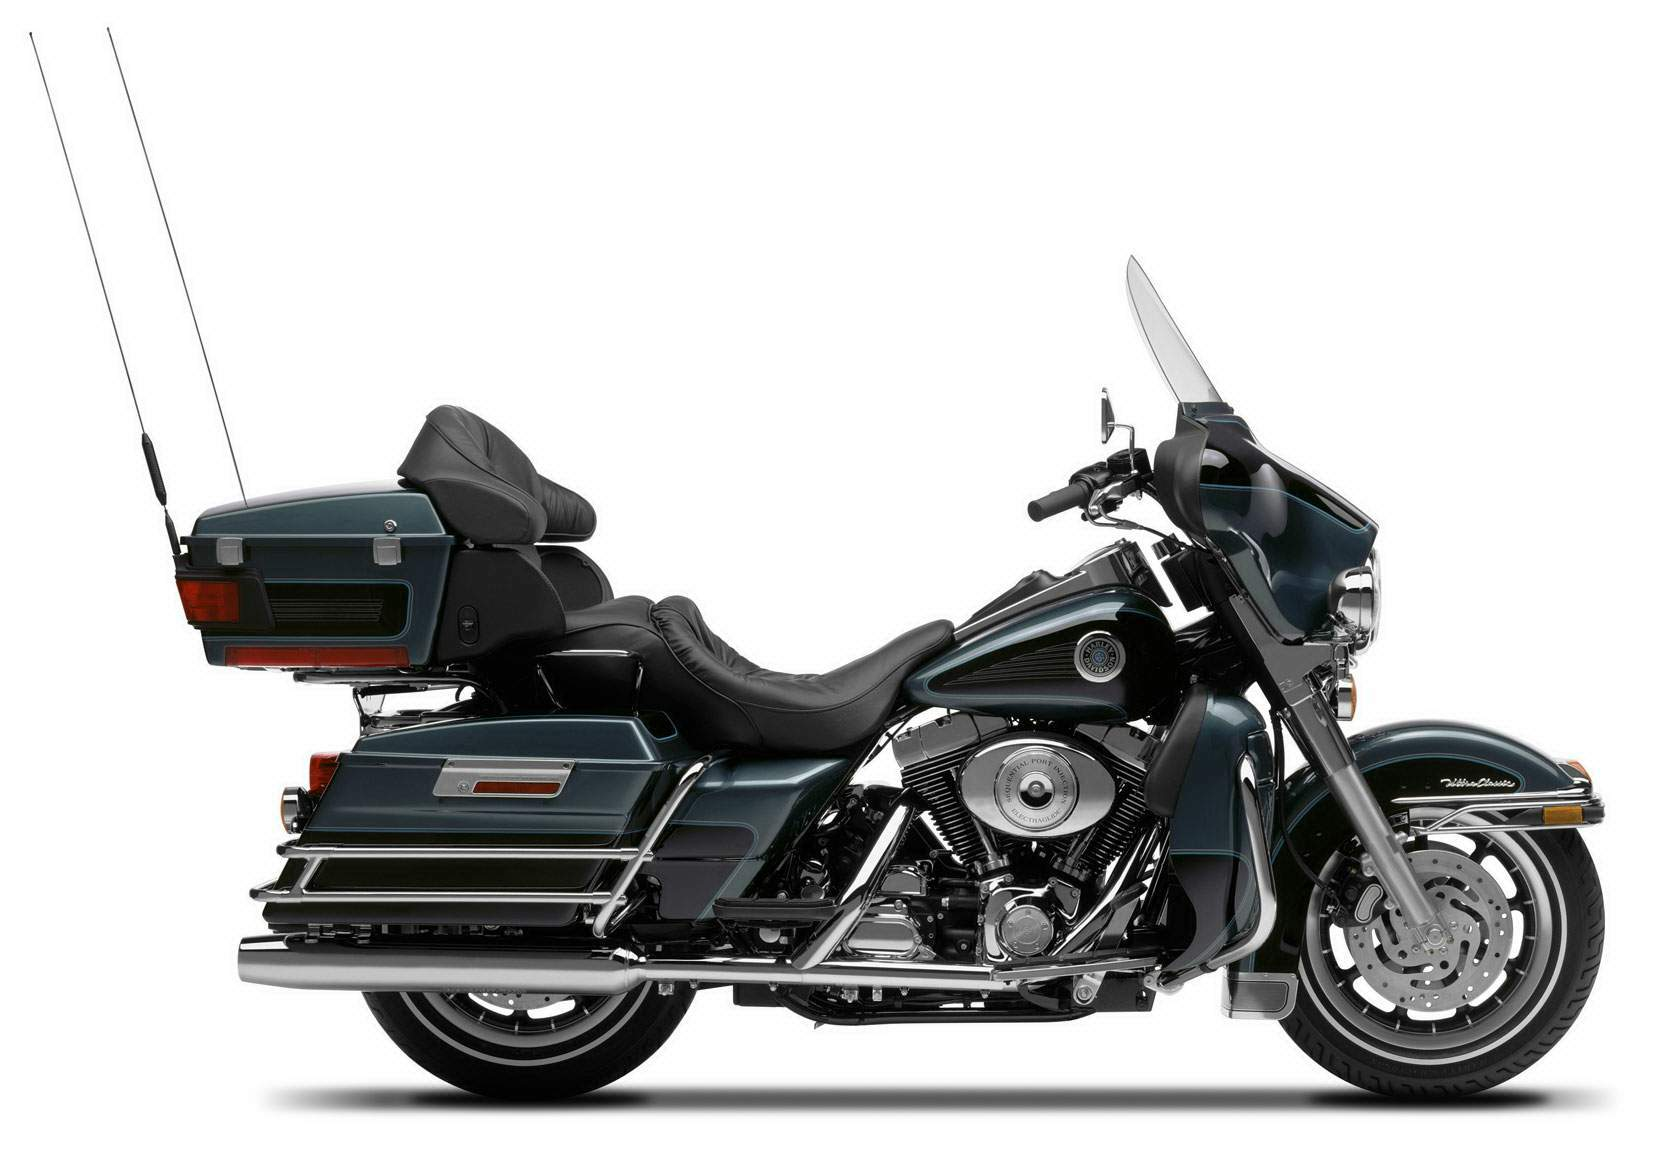 2001 Harley-Davidson Electra Glide Ultra Classic #1